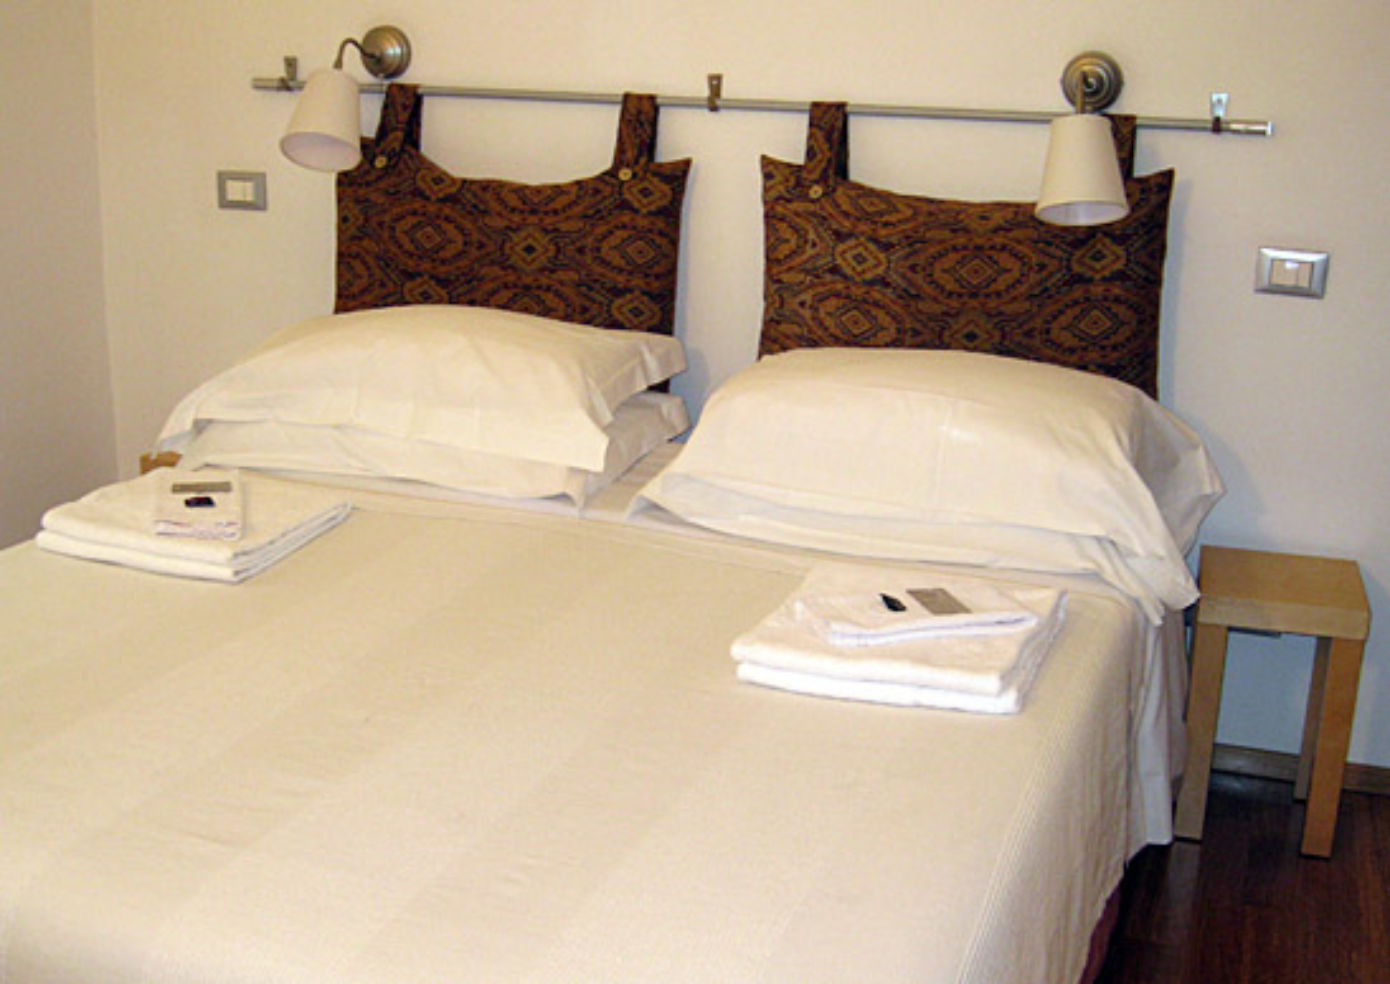 The modern, spare rooms have white linens, some punctuated by batik pillowcases.